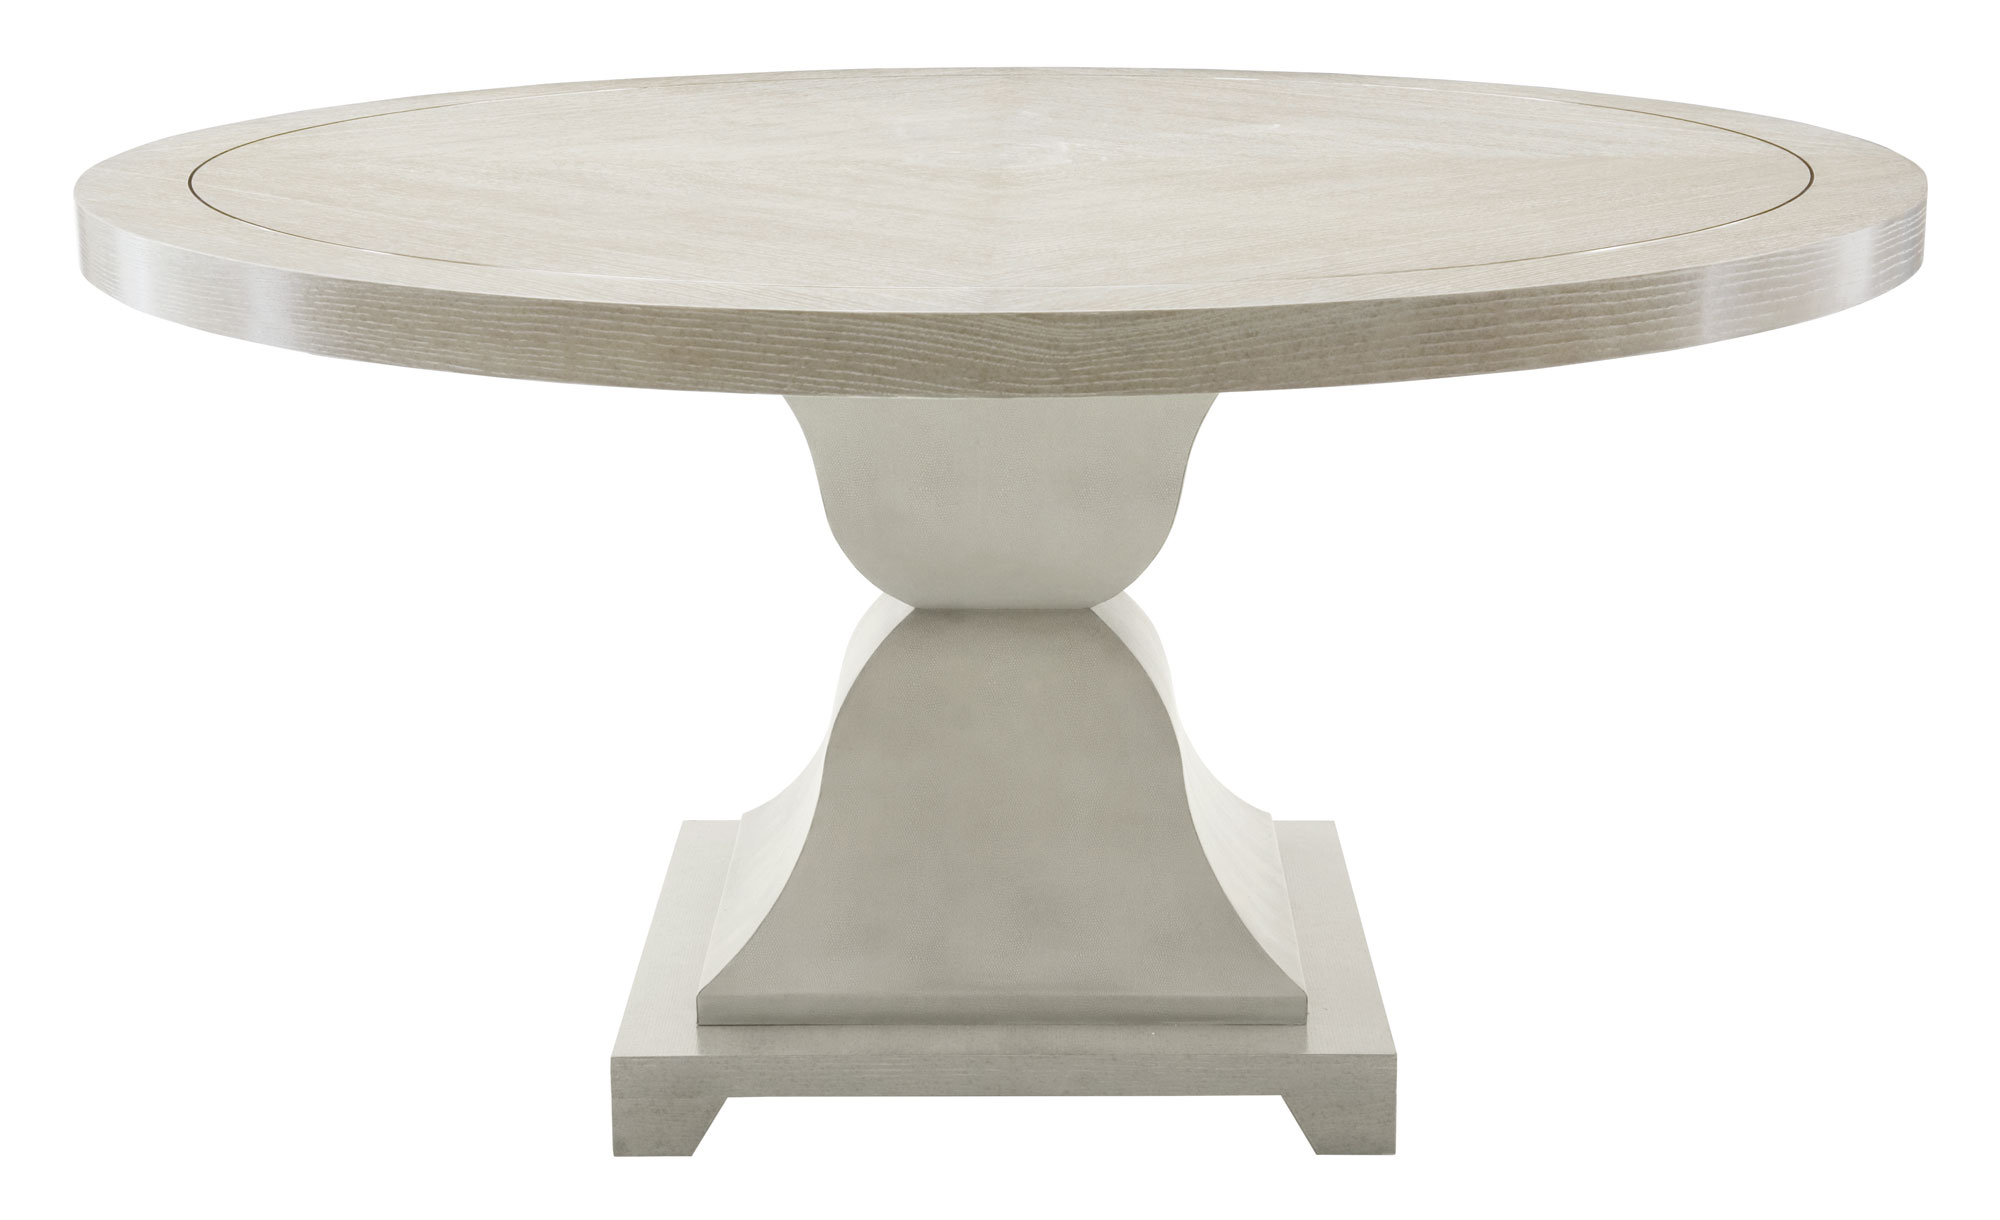 Round Dining Table Bernhardt Dining Room Table 6 Chairs Inside Most Popular Dawson Pedestal Dining Tables (Image 21 of 25)